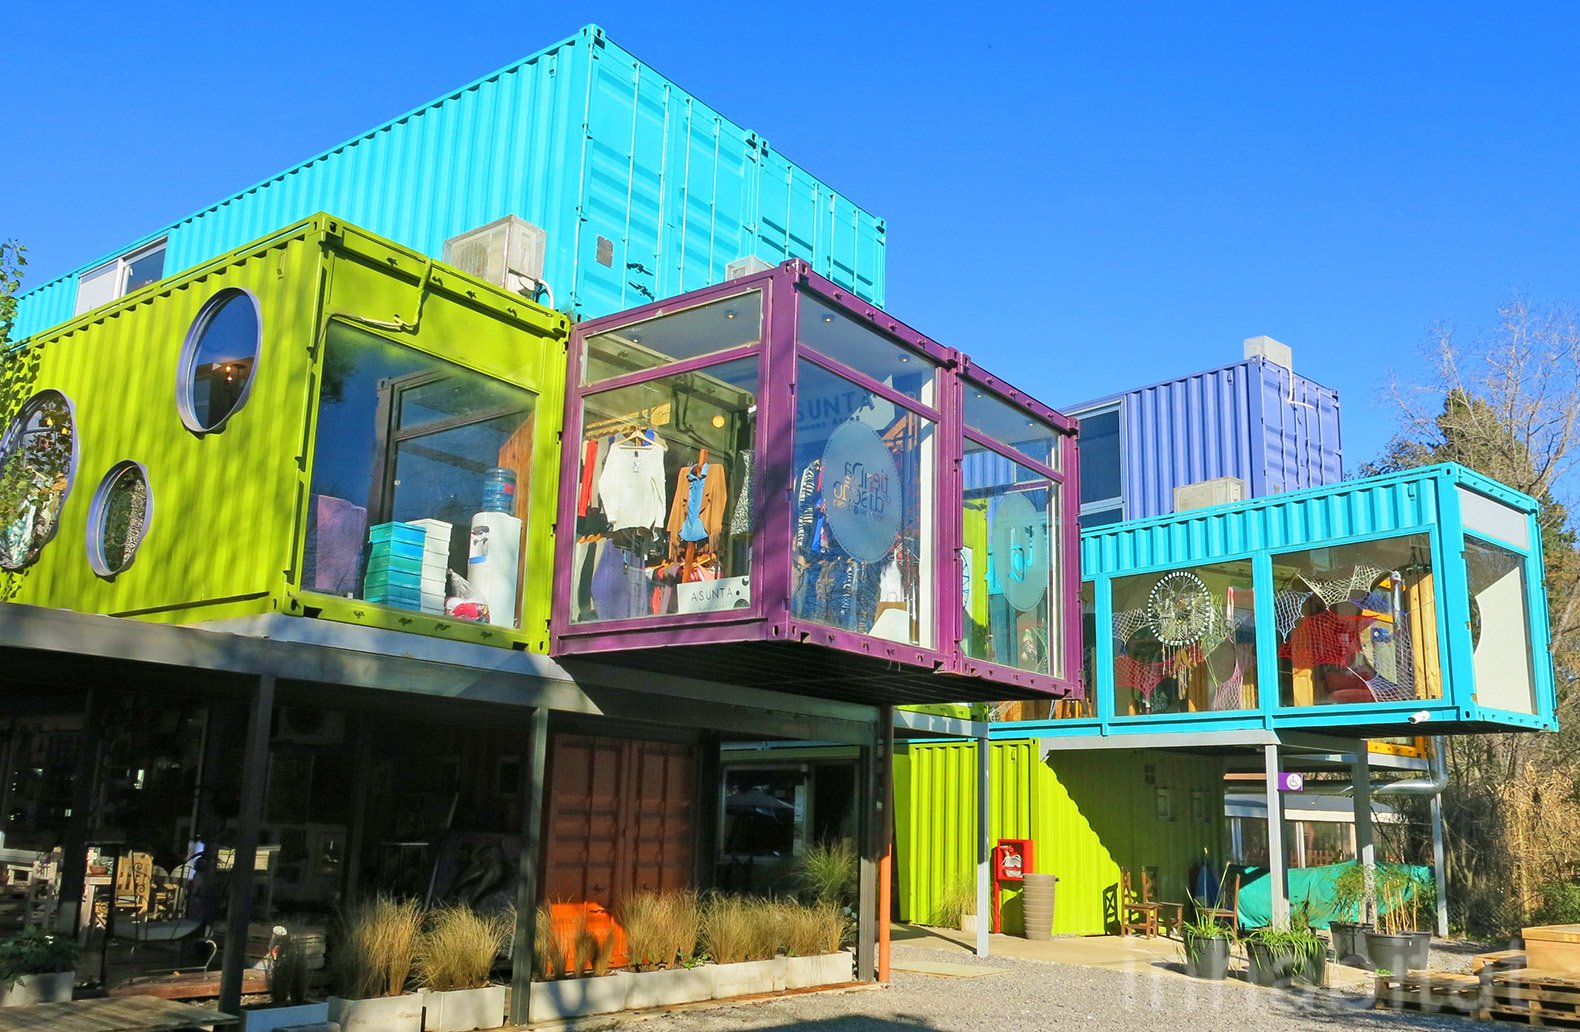 BZZ Arquitectura, shipping container mall, QUO Container Center, Cecilia Bertezzolo, EcoSan, Ingeniero Maschwitz, colorful containers, sustaimable shopping center, Buenos Aires, stacked shipping containers